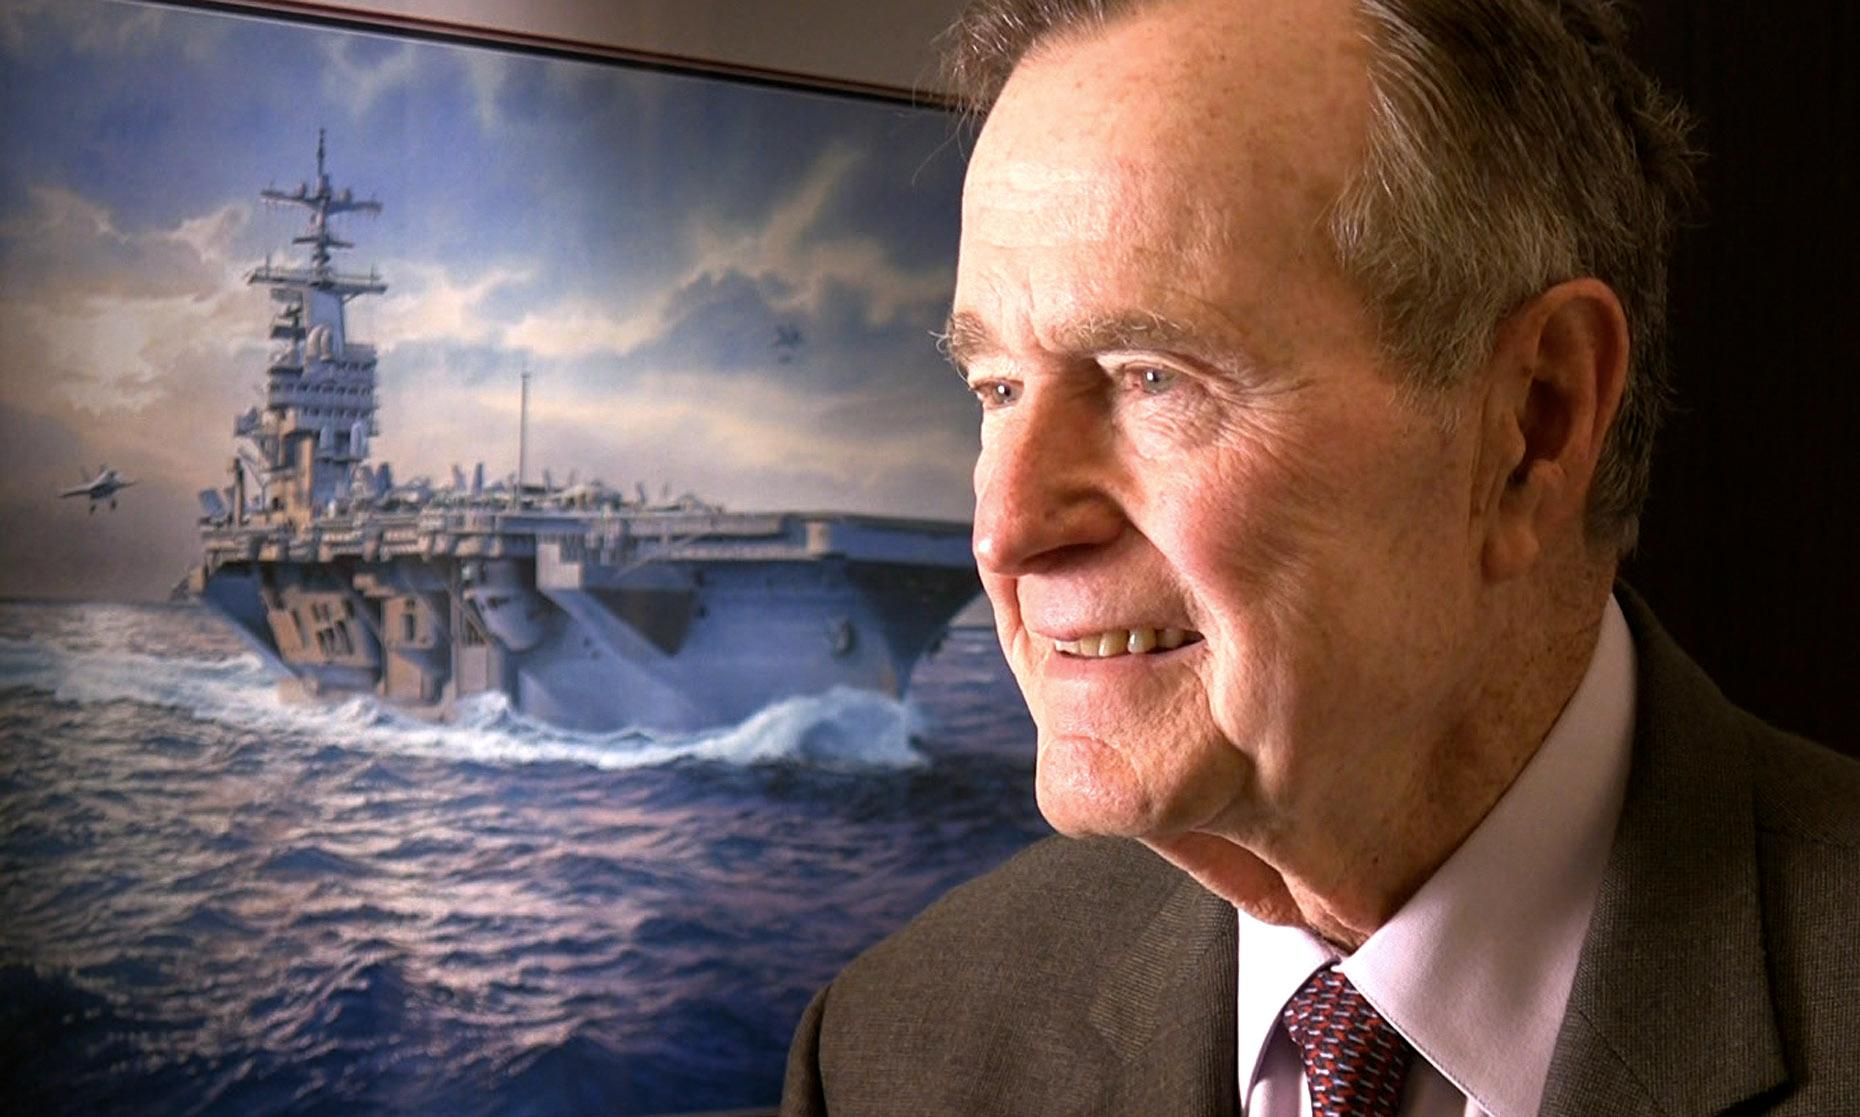 Naval Air Station Corpus Christi could be re-named after Bush 41